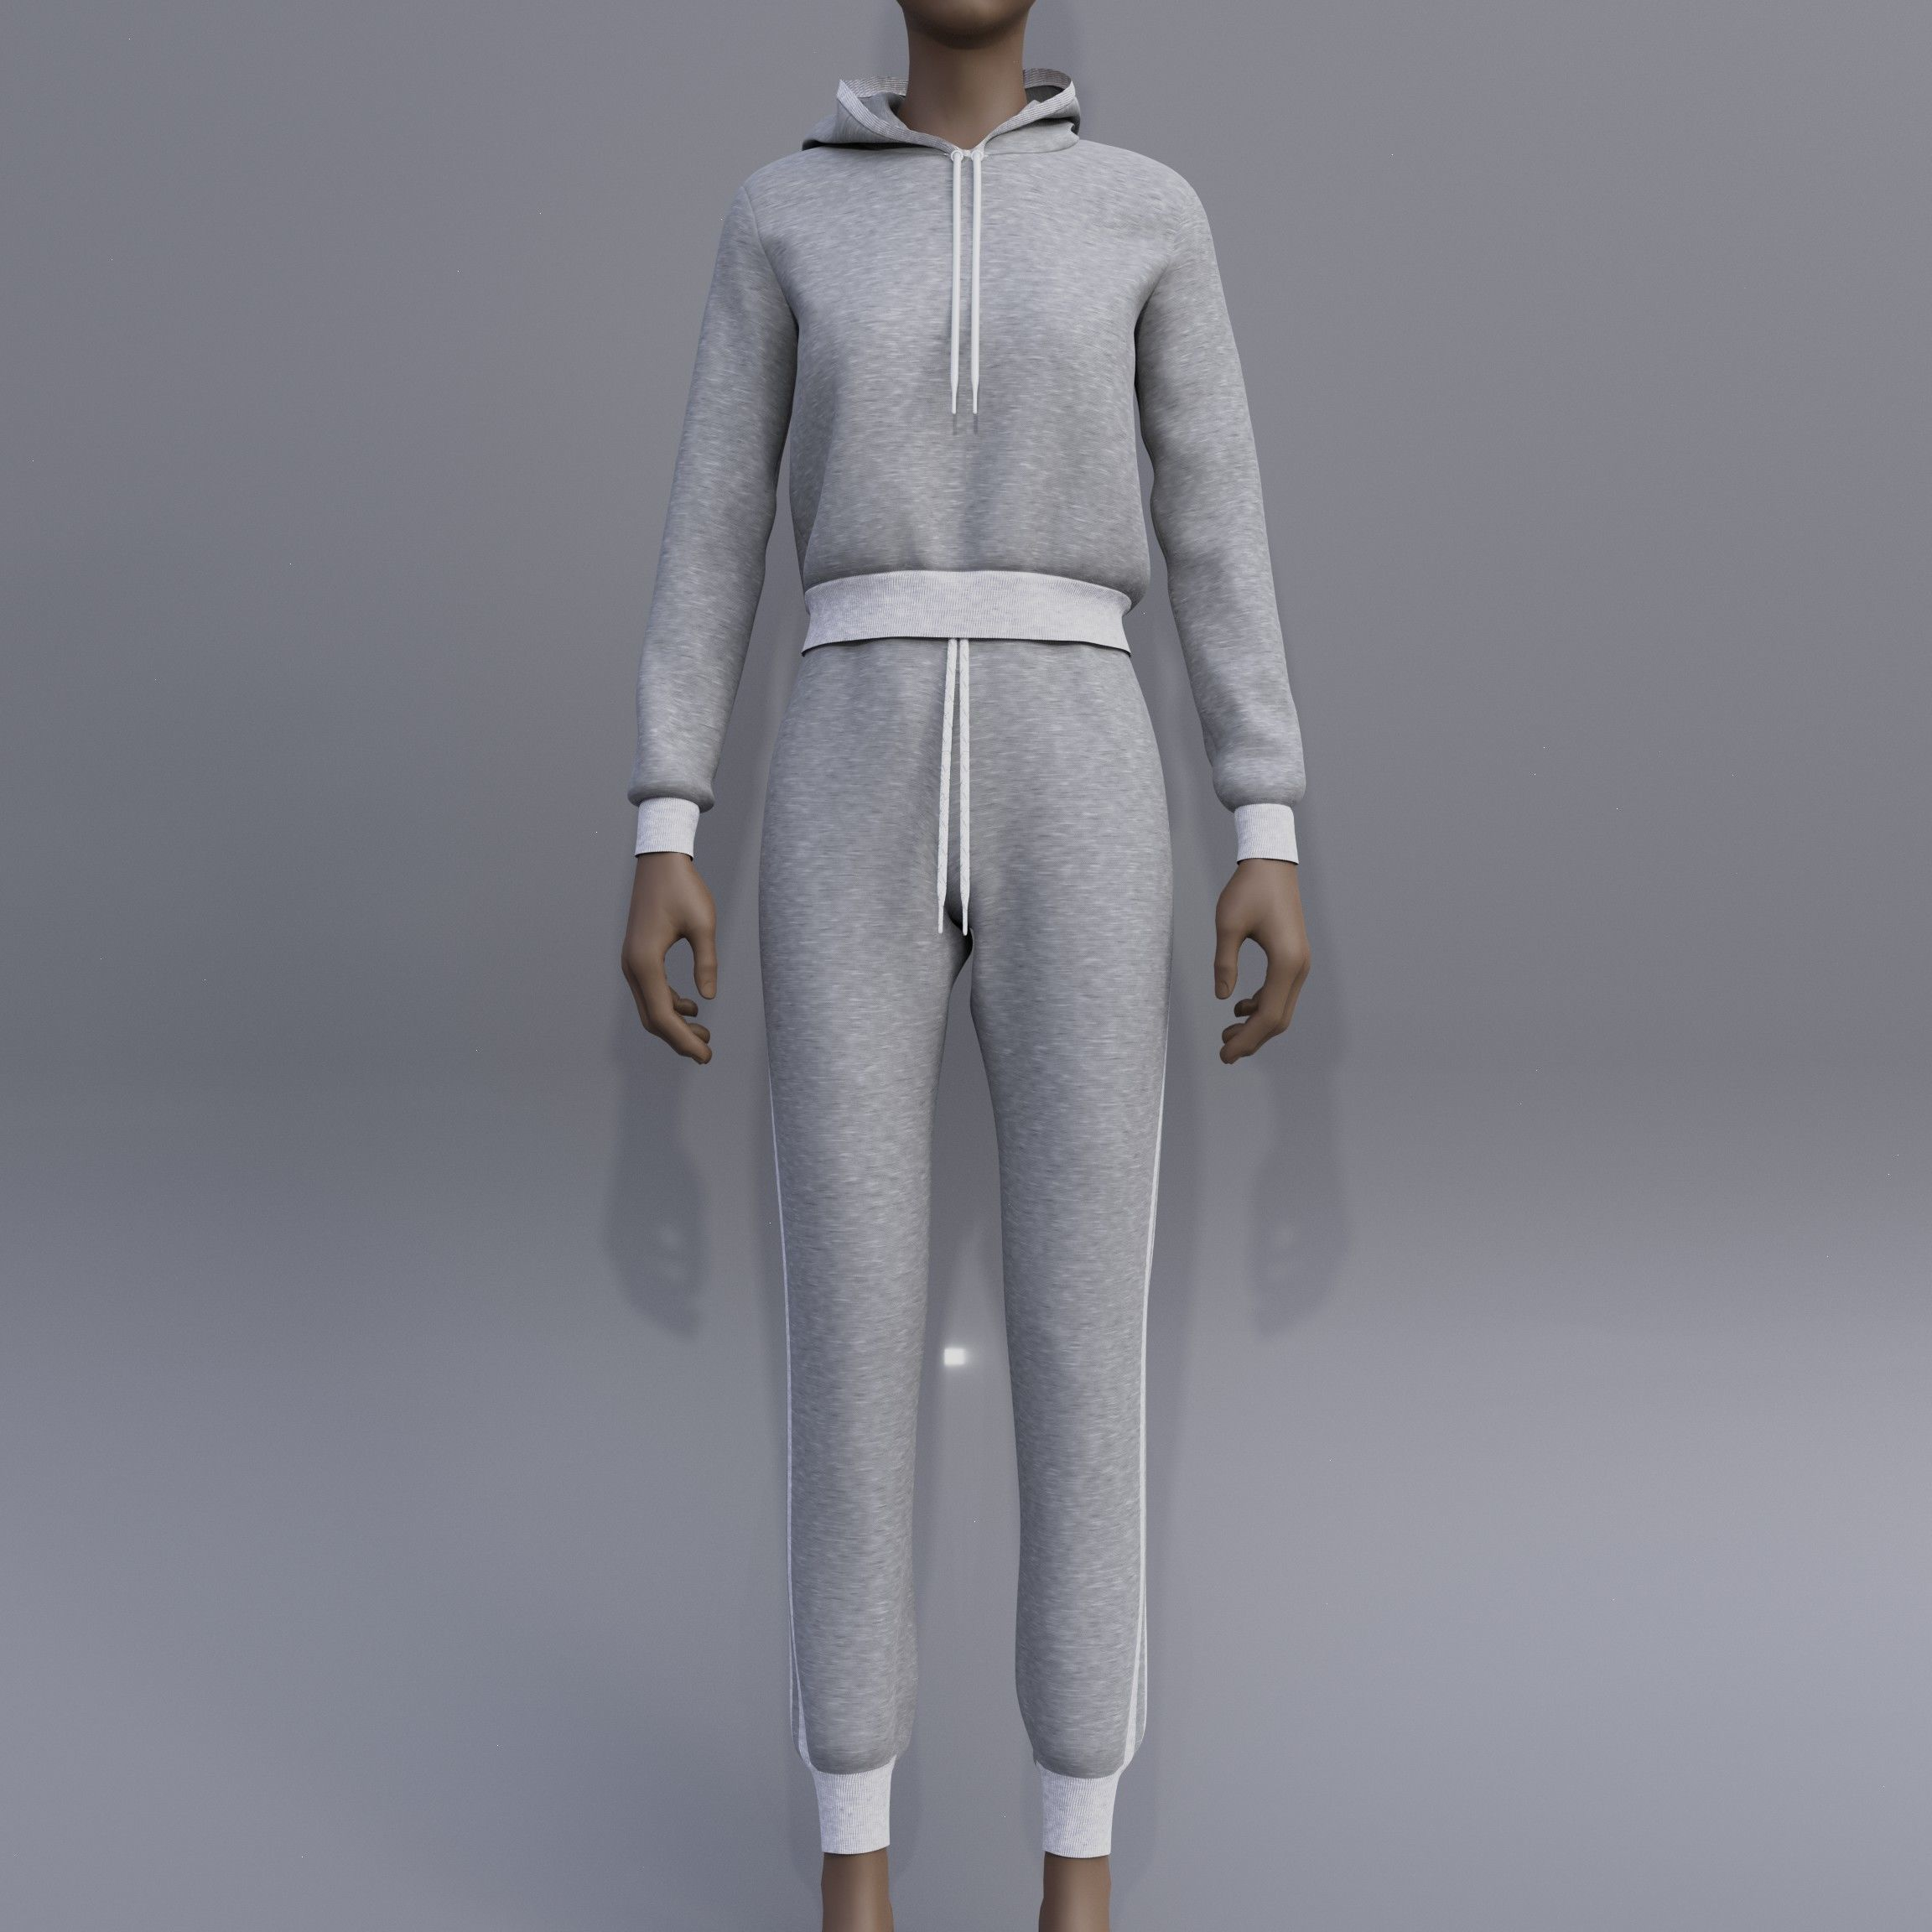 female joggers - hoodie sweater and Sweatpants